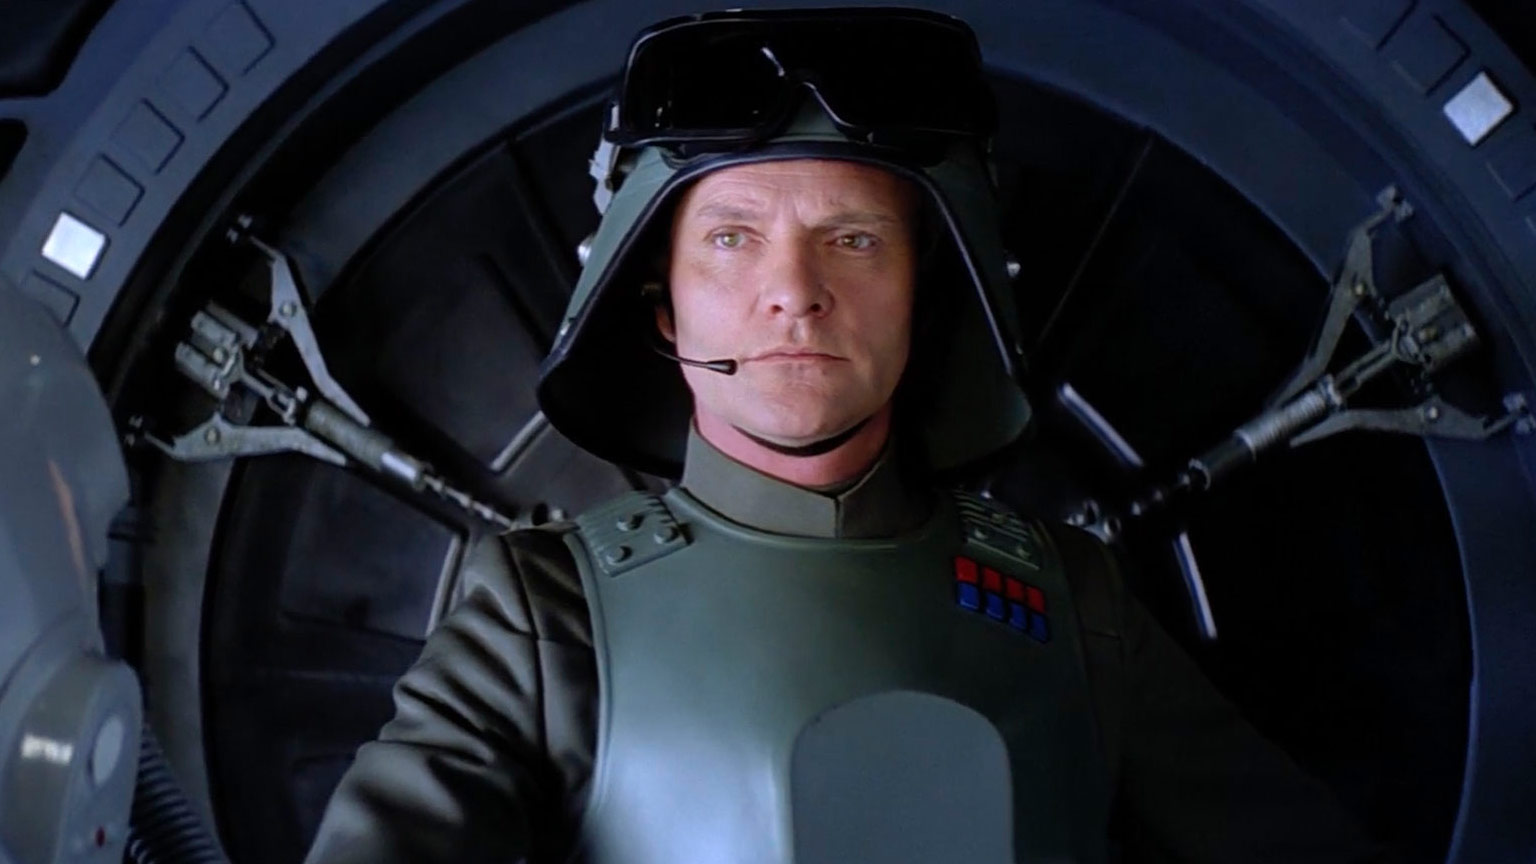 The Empire Strikes Back - General Veers